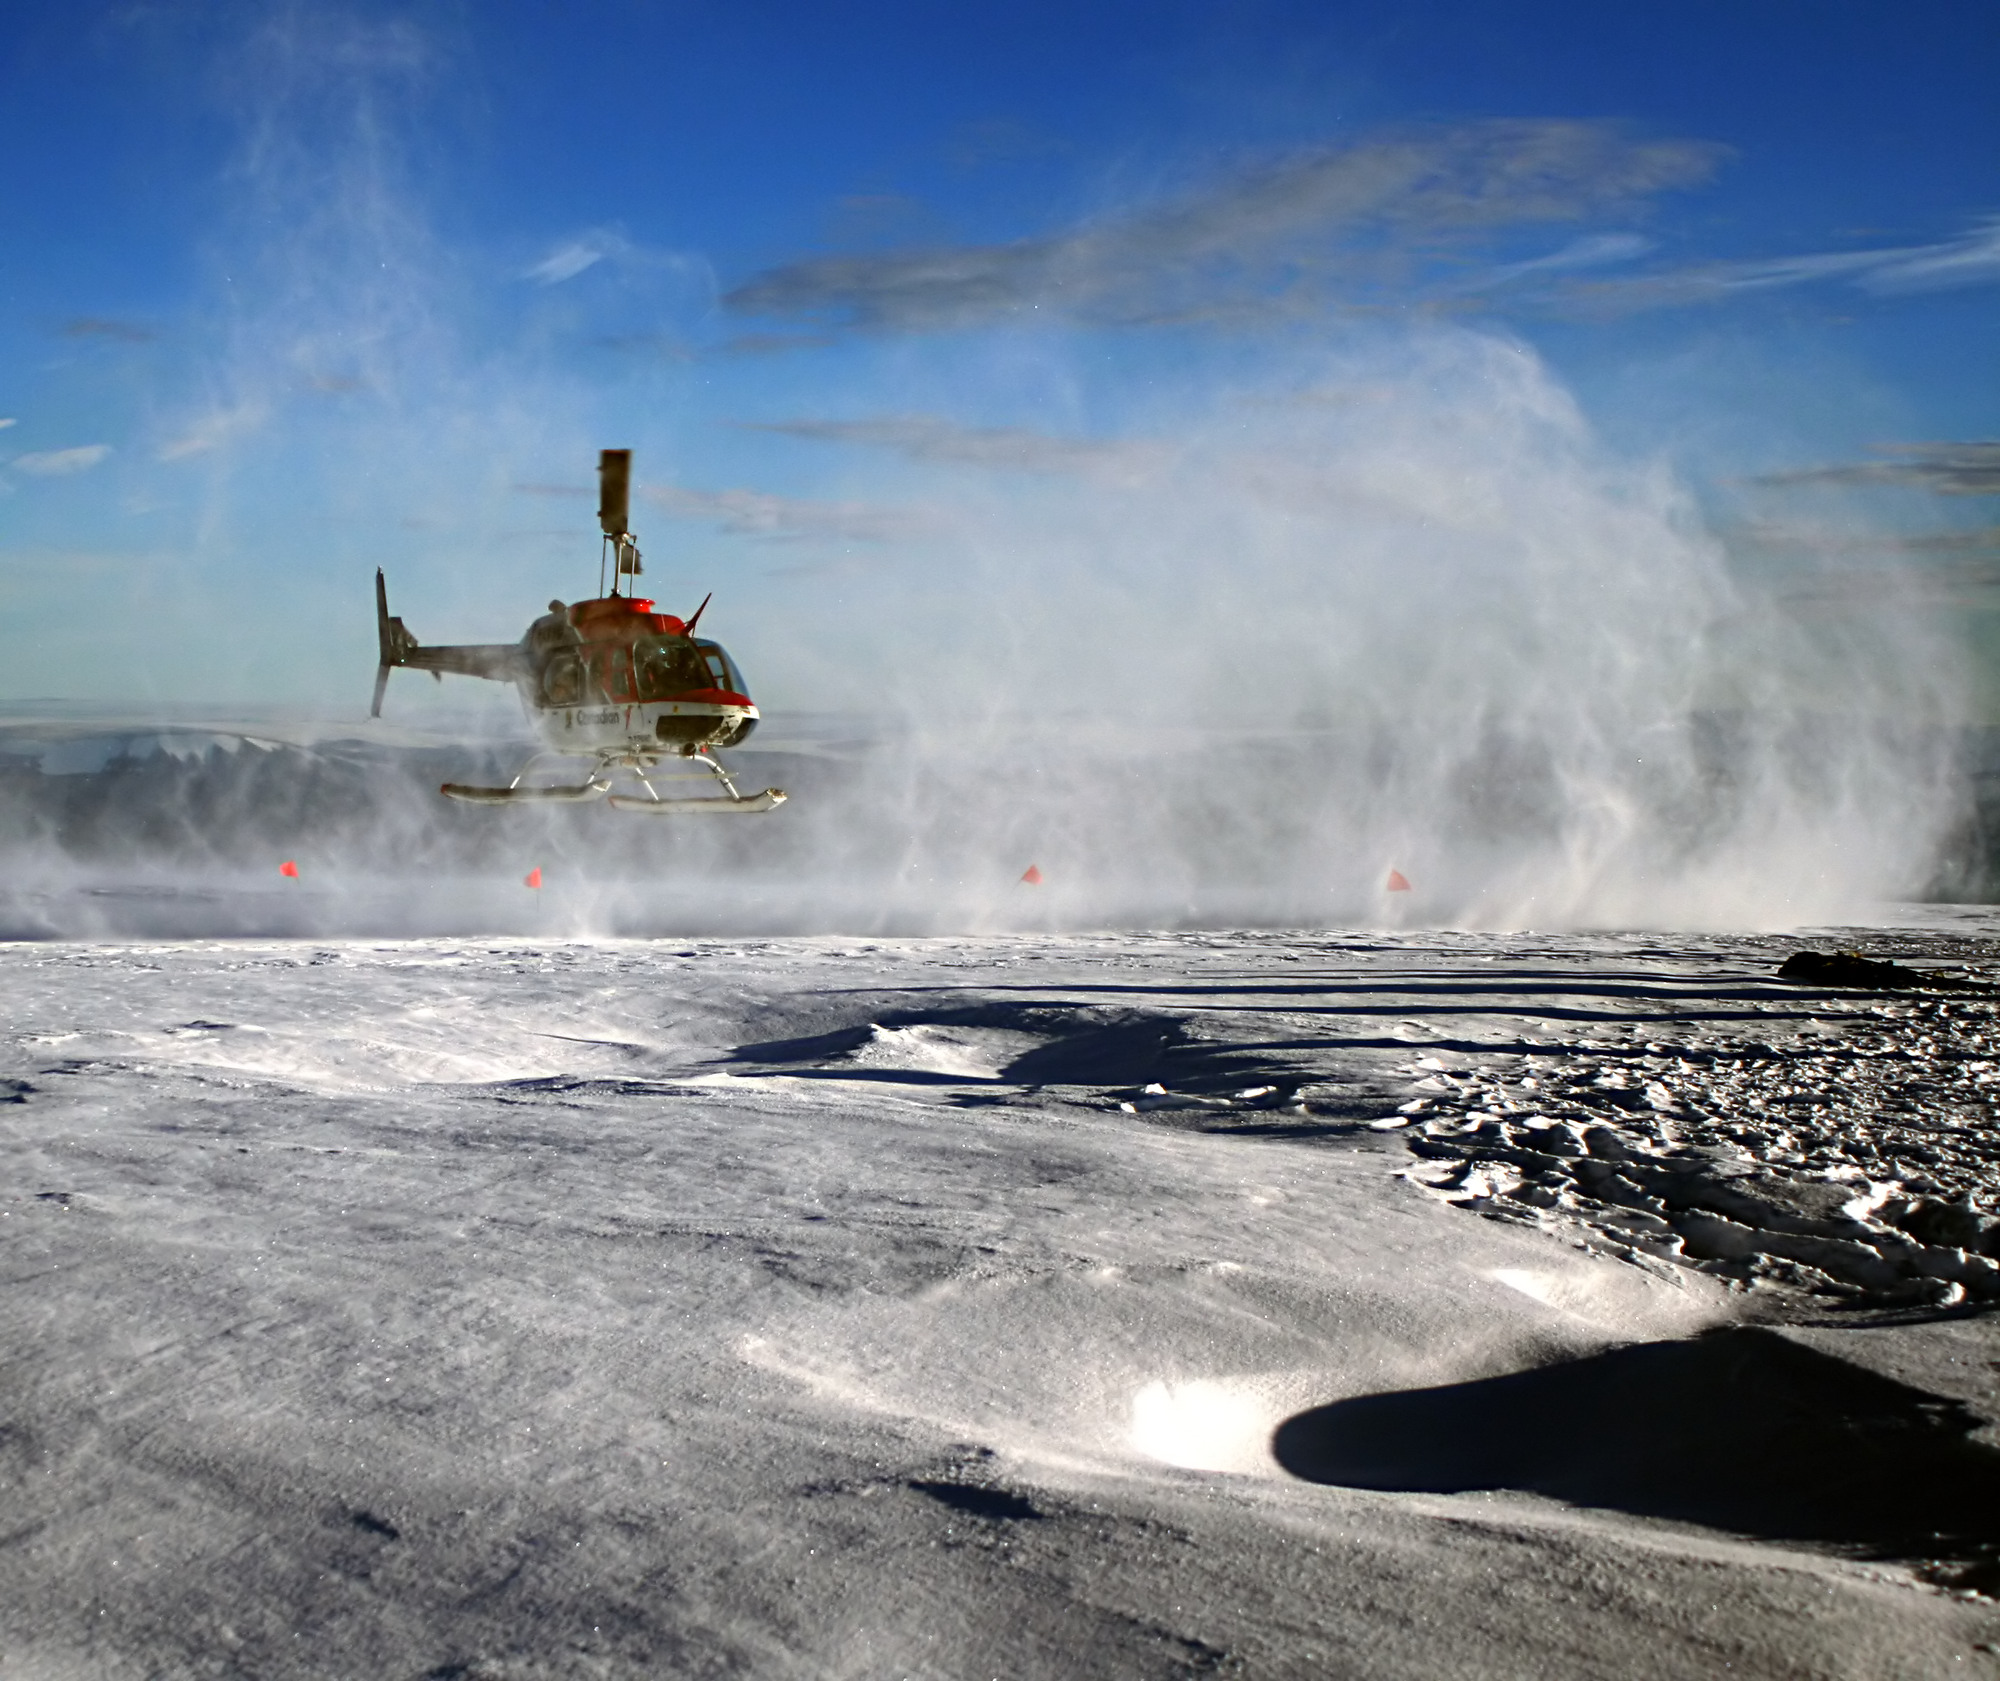 Helicopter_is_taking_off_Greenland_ice_sheet_.jpg